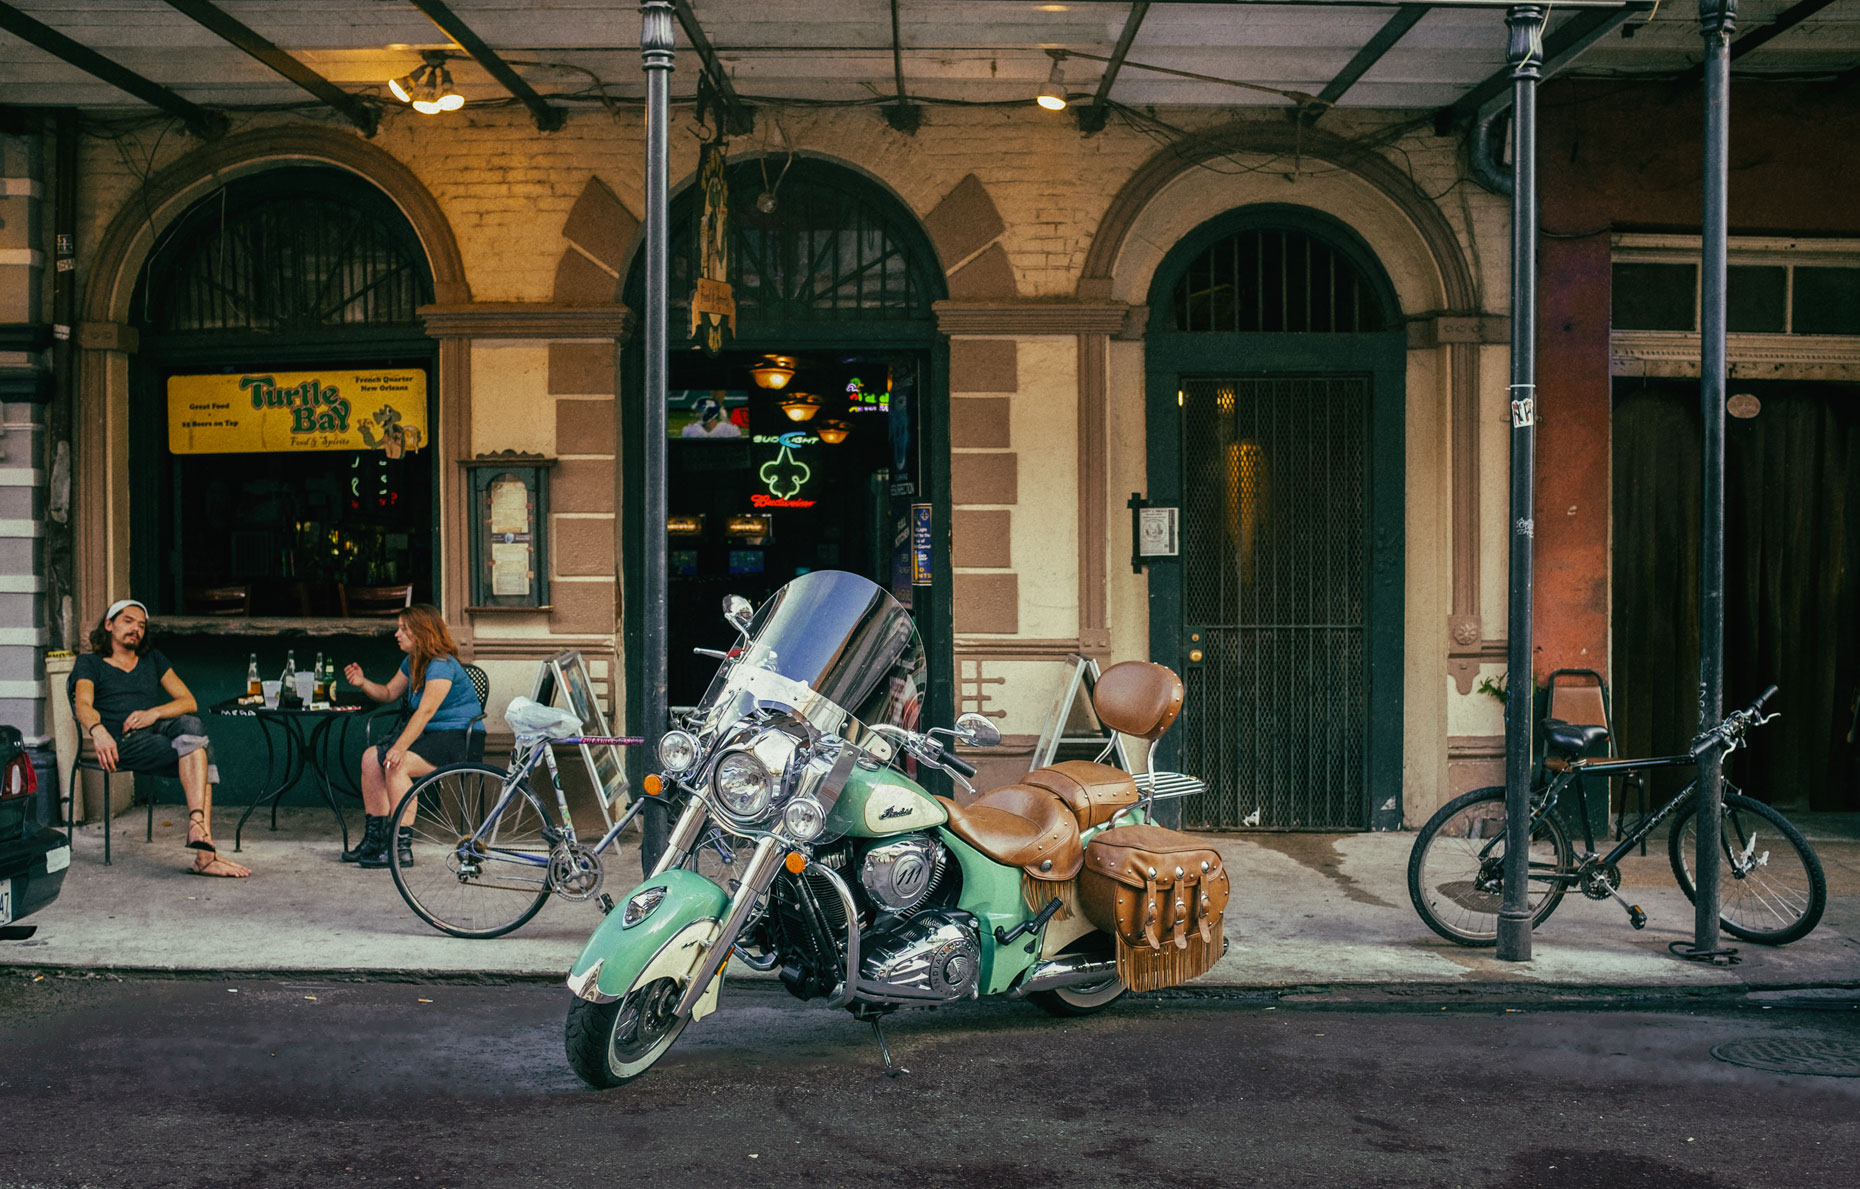 Street view in New Orleans by photographer Kevin Brown